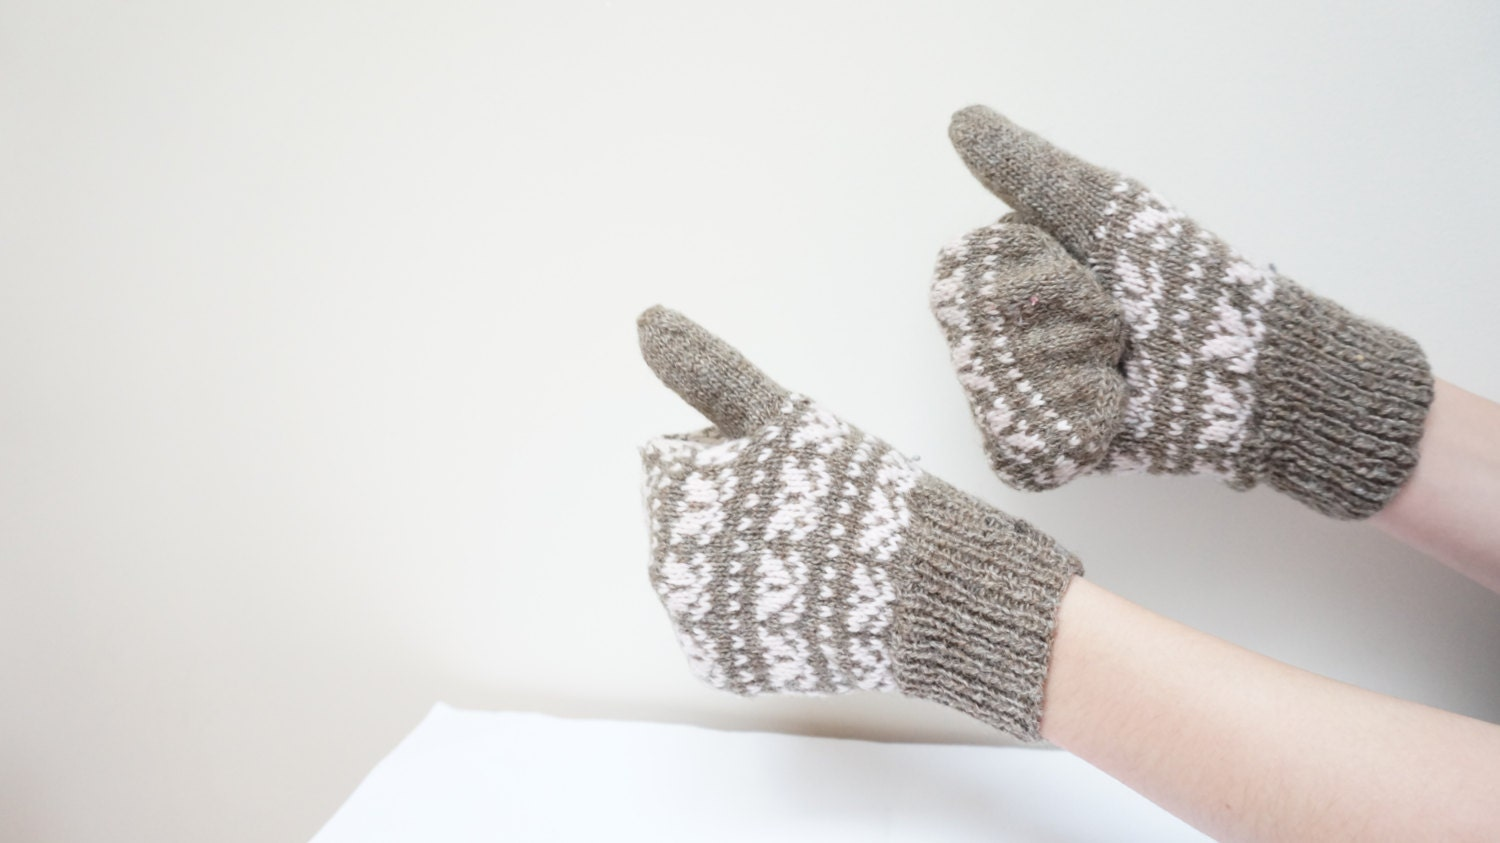 Handmade Mittens Gloves Women Children Retro natural wool vintage knit grey pink white Soviet  Christmas crochet Lithuania Russia 1980s - LivePastVintage